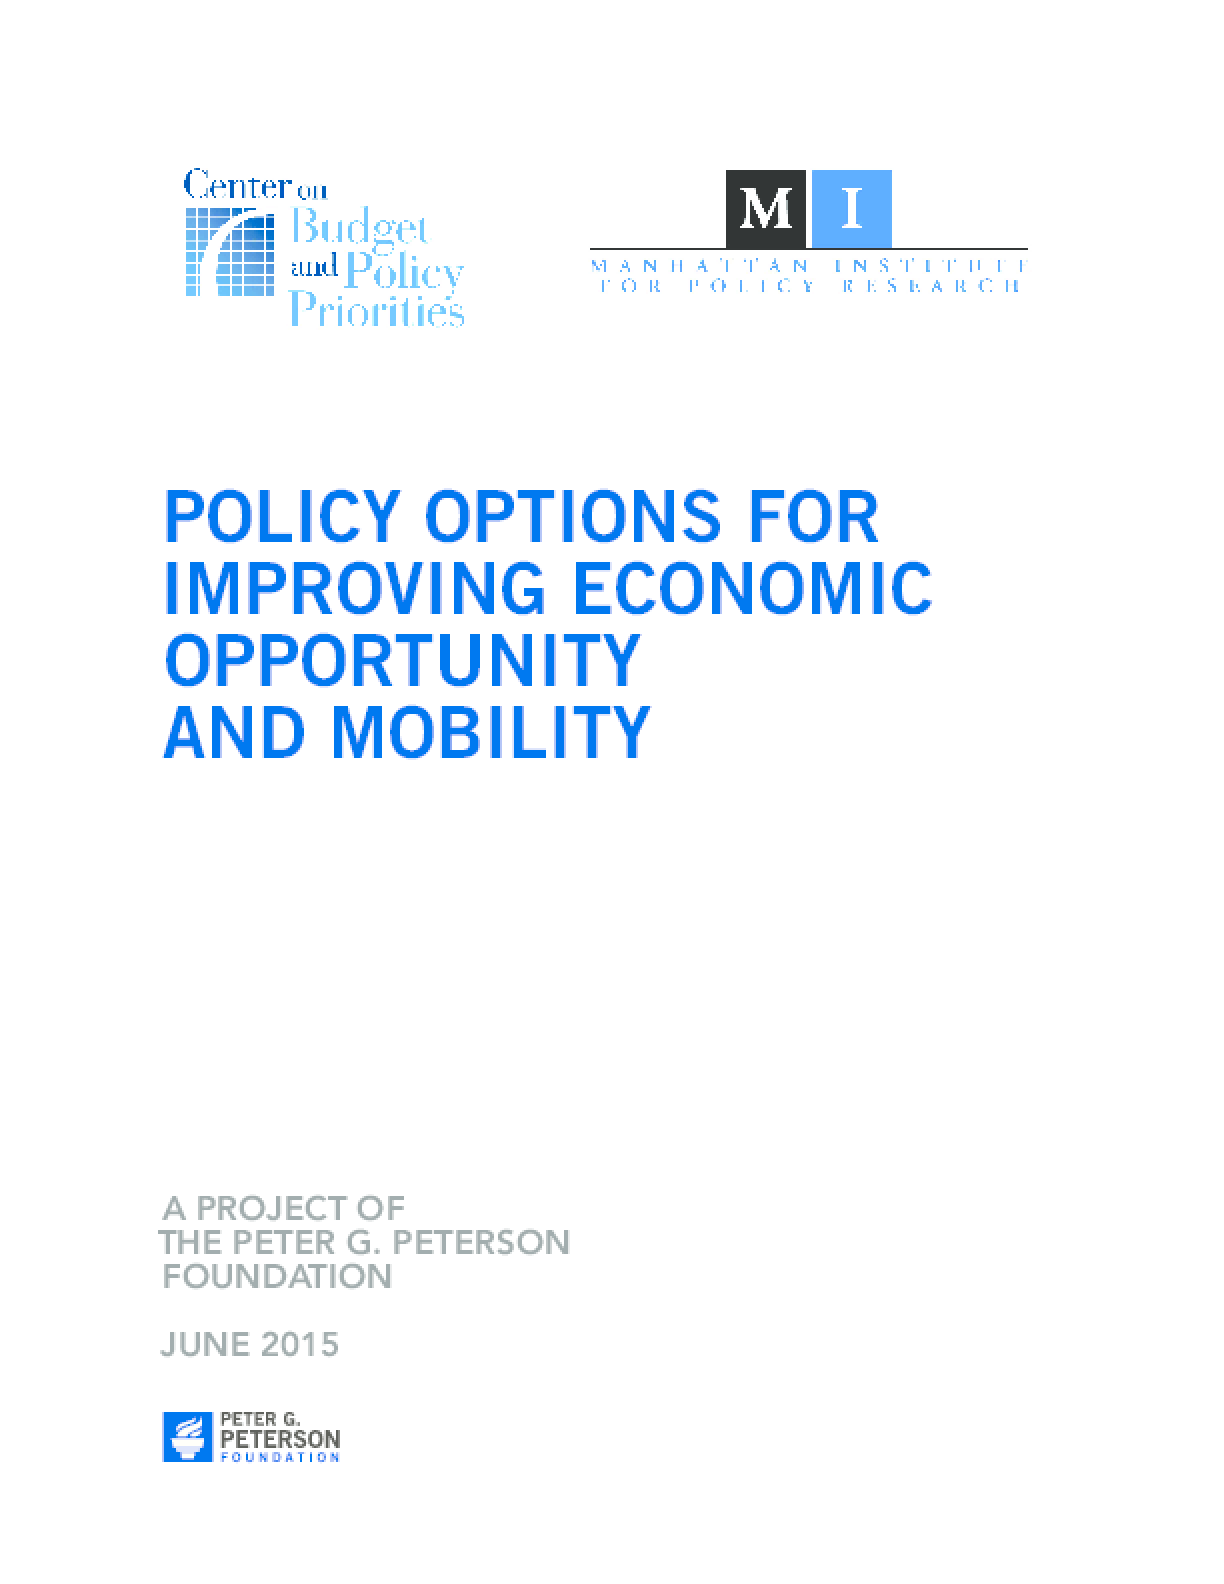 Policy Options For Improving Economic Opportunity and Mobility